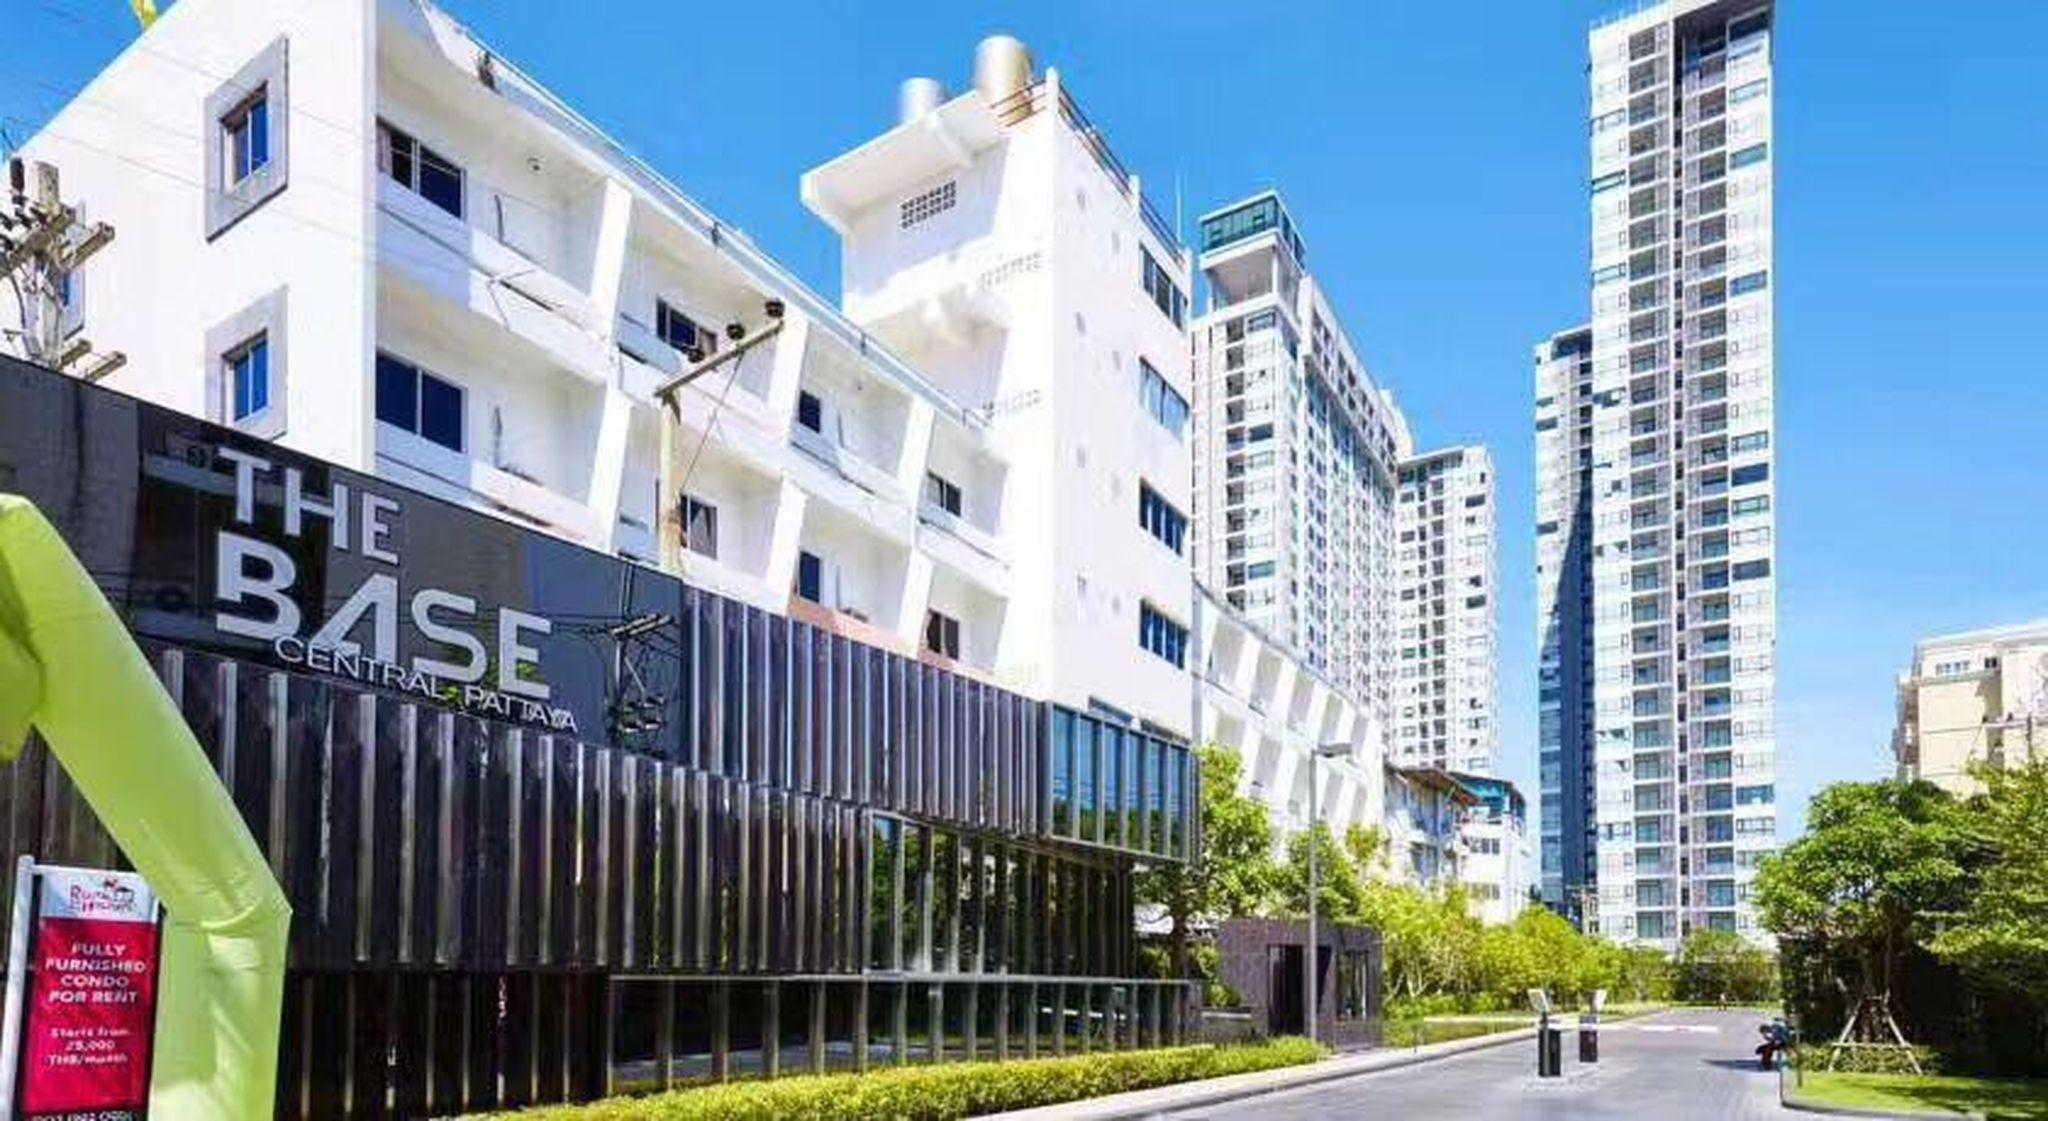 The Base Central Pattaya By Minsu Double Suite